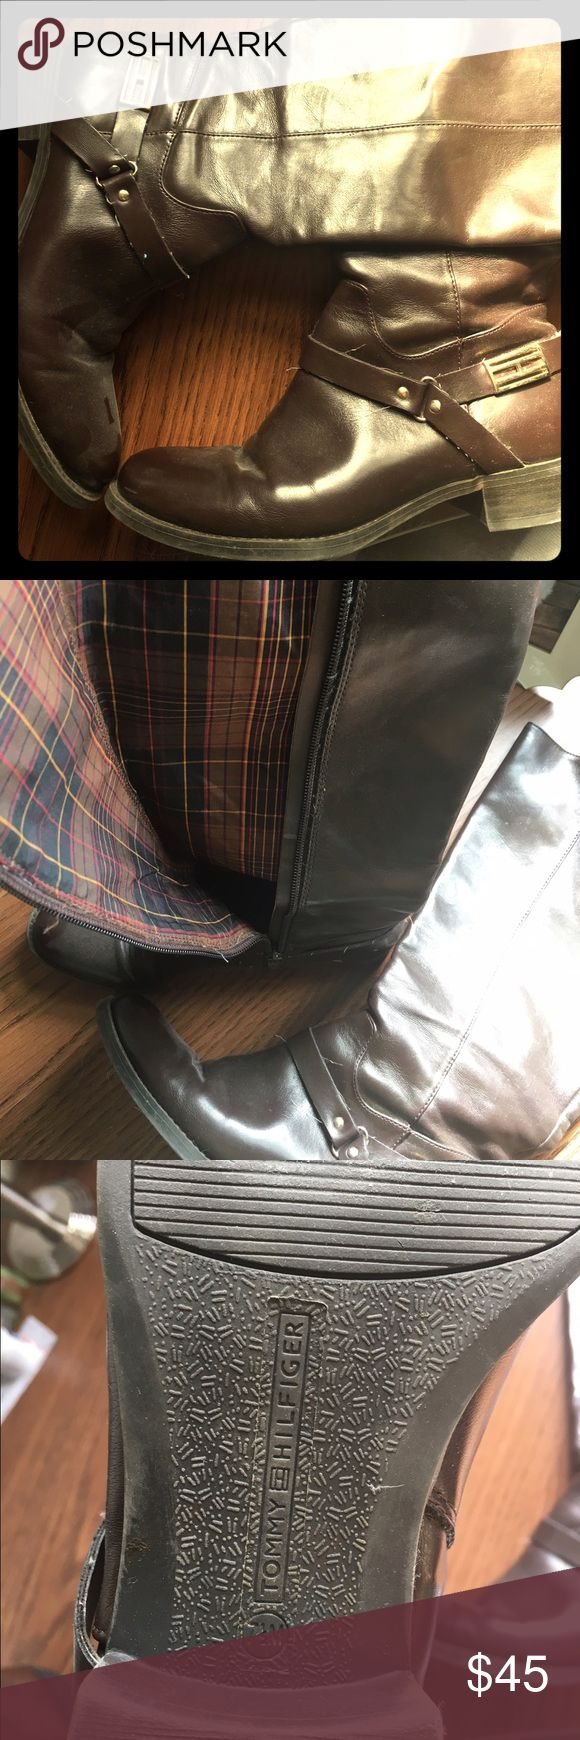 Tommy Hilfiger Boots Slightly worn leather Tommy boots in great shape, size 7 1/2! Super cute plaid interior and gold detailing :) Tommy Hilfiger Shoes Ankle Boots & Booties